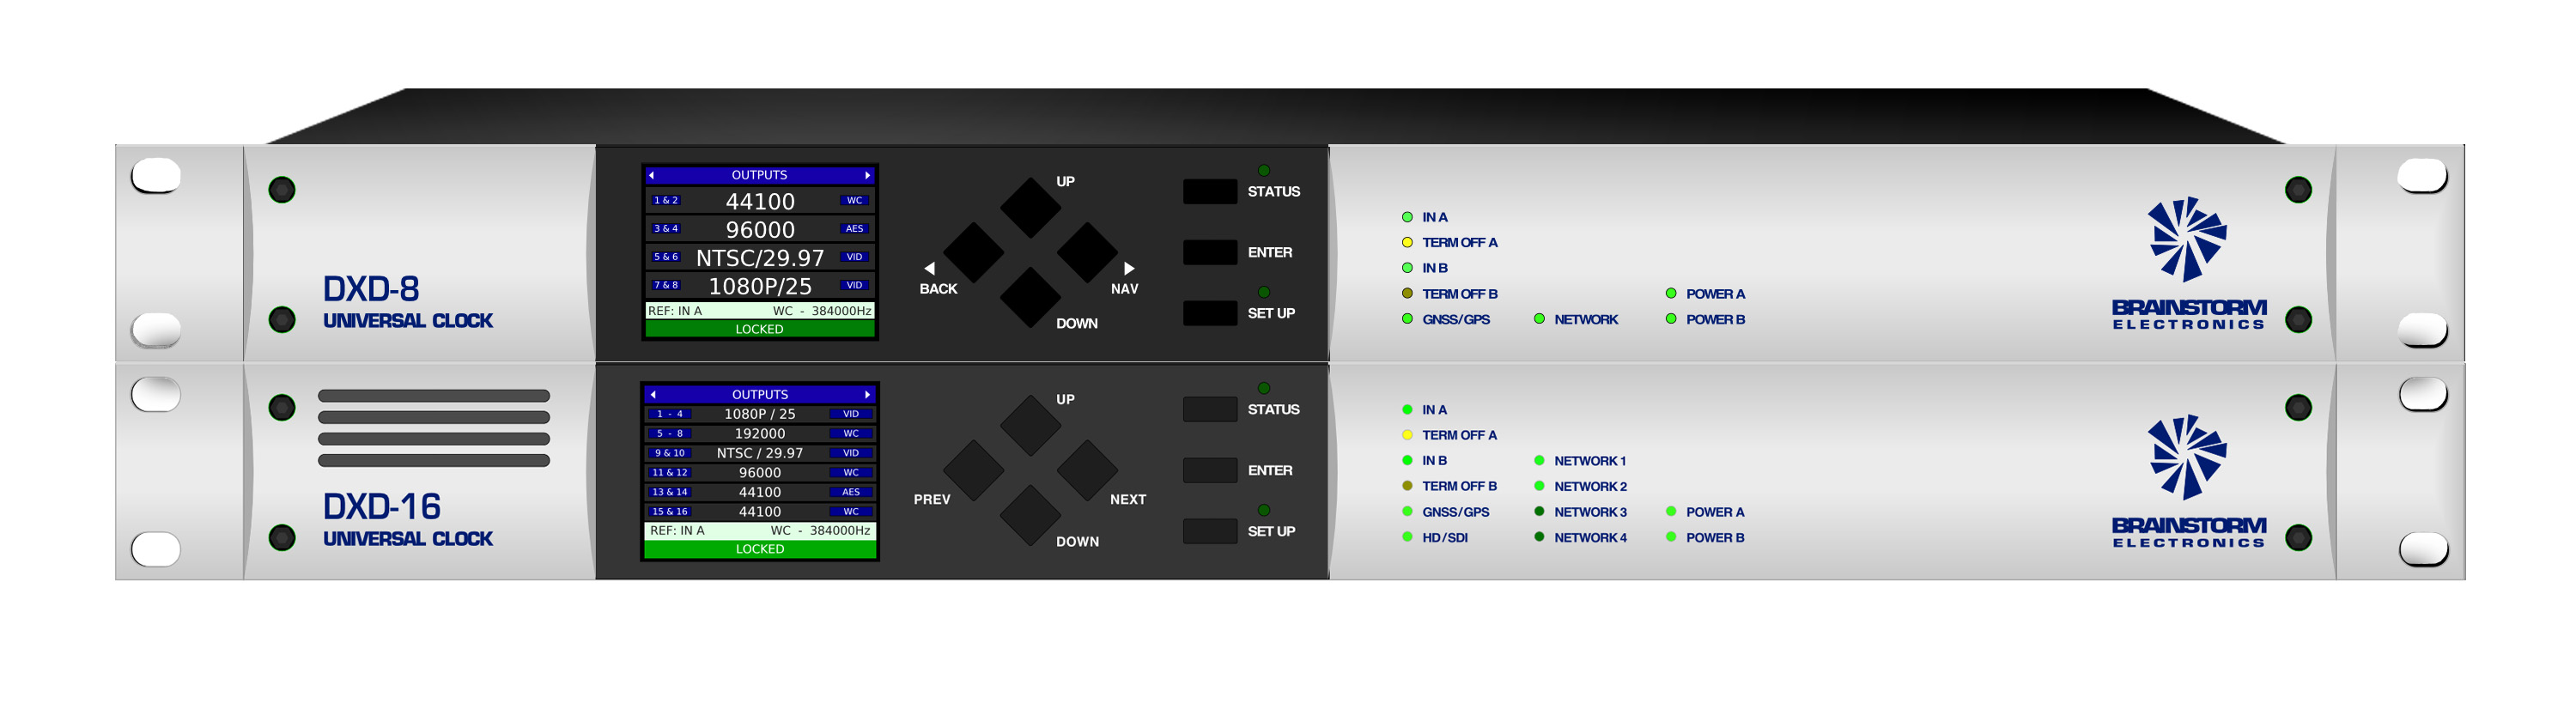 DXD-8 and DXD-16 Universal Clocks